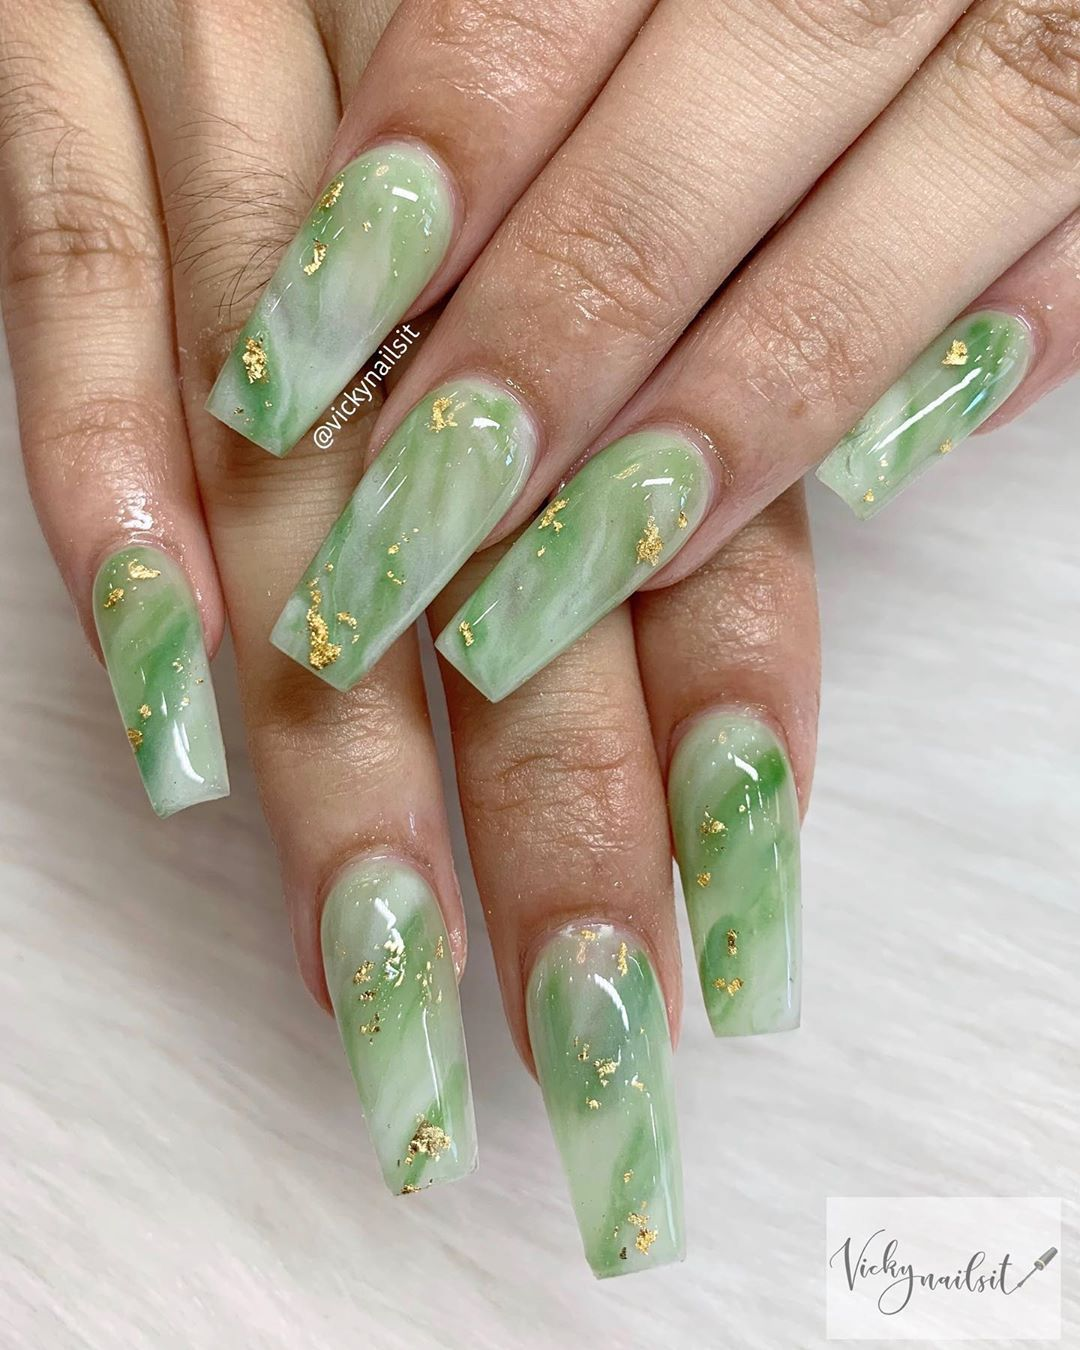 Vicky On Instagram Jade Nails Jade Jewelry Is Well Known In Many Asian Countries For Its Beauty And Meaningful Rep In 2020 Jade Nails Gem Nails Pretty Acrylic Nails